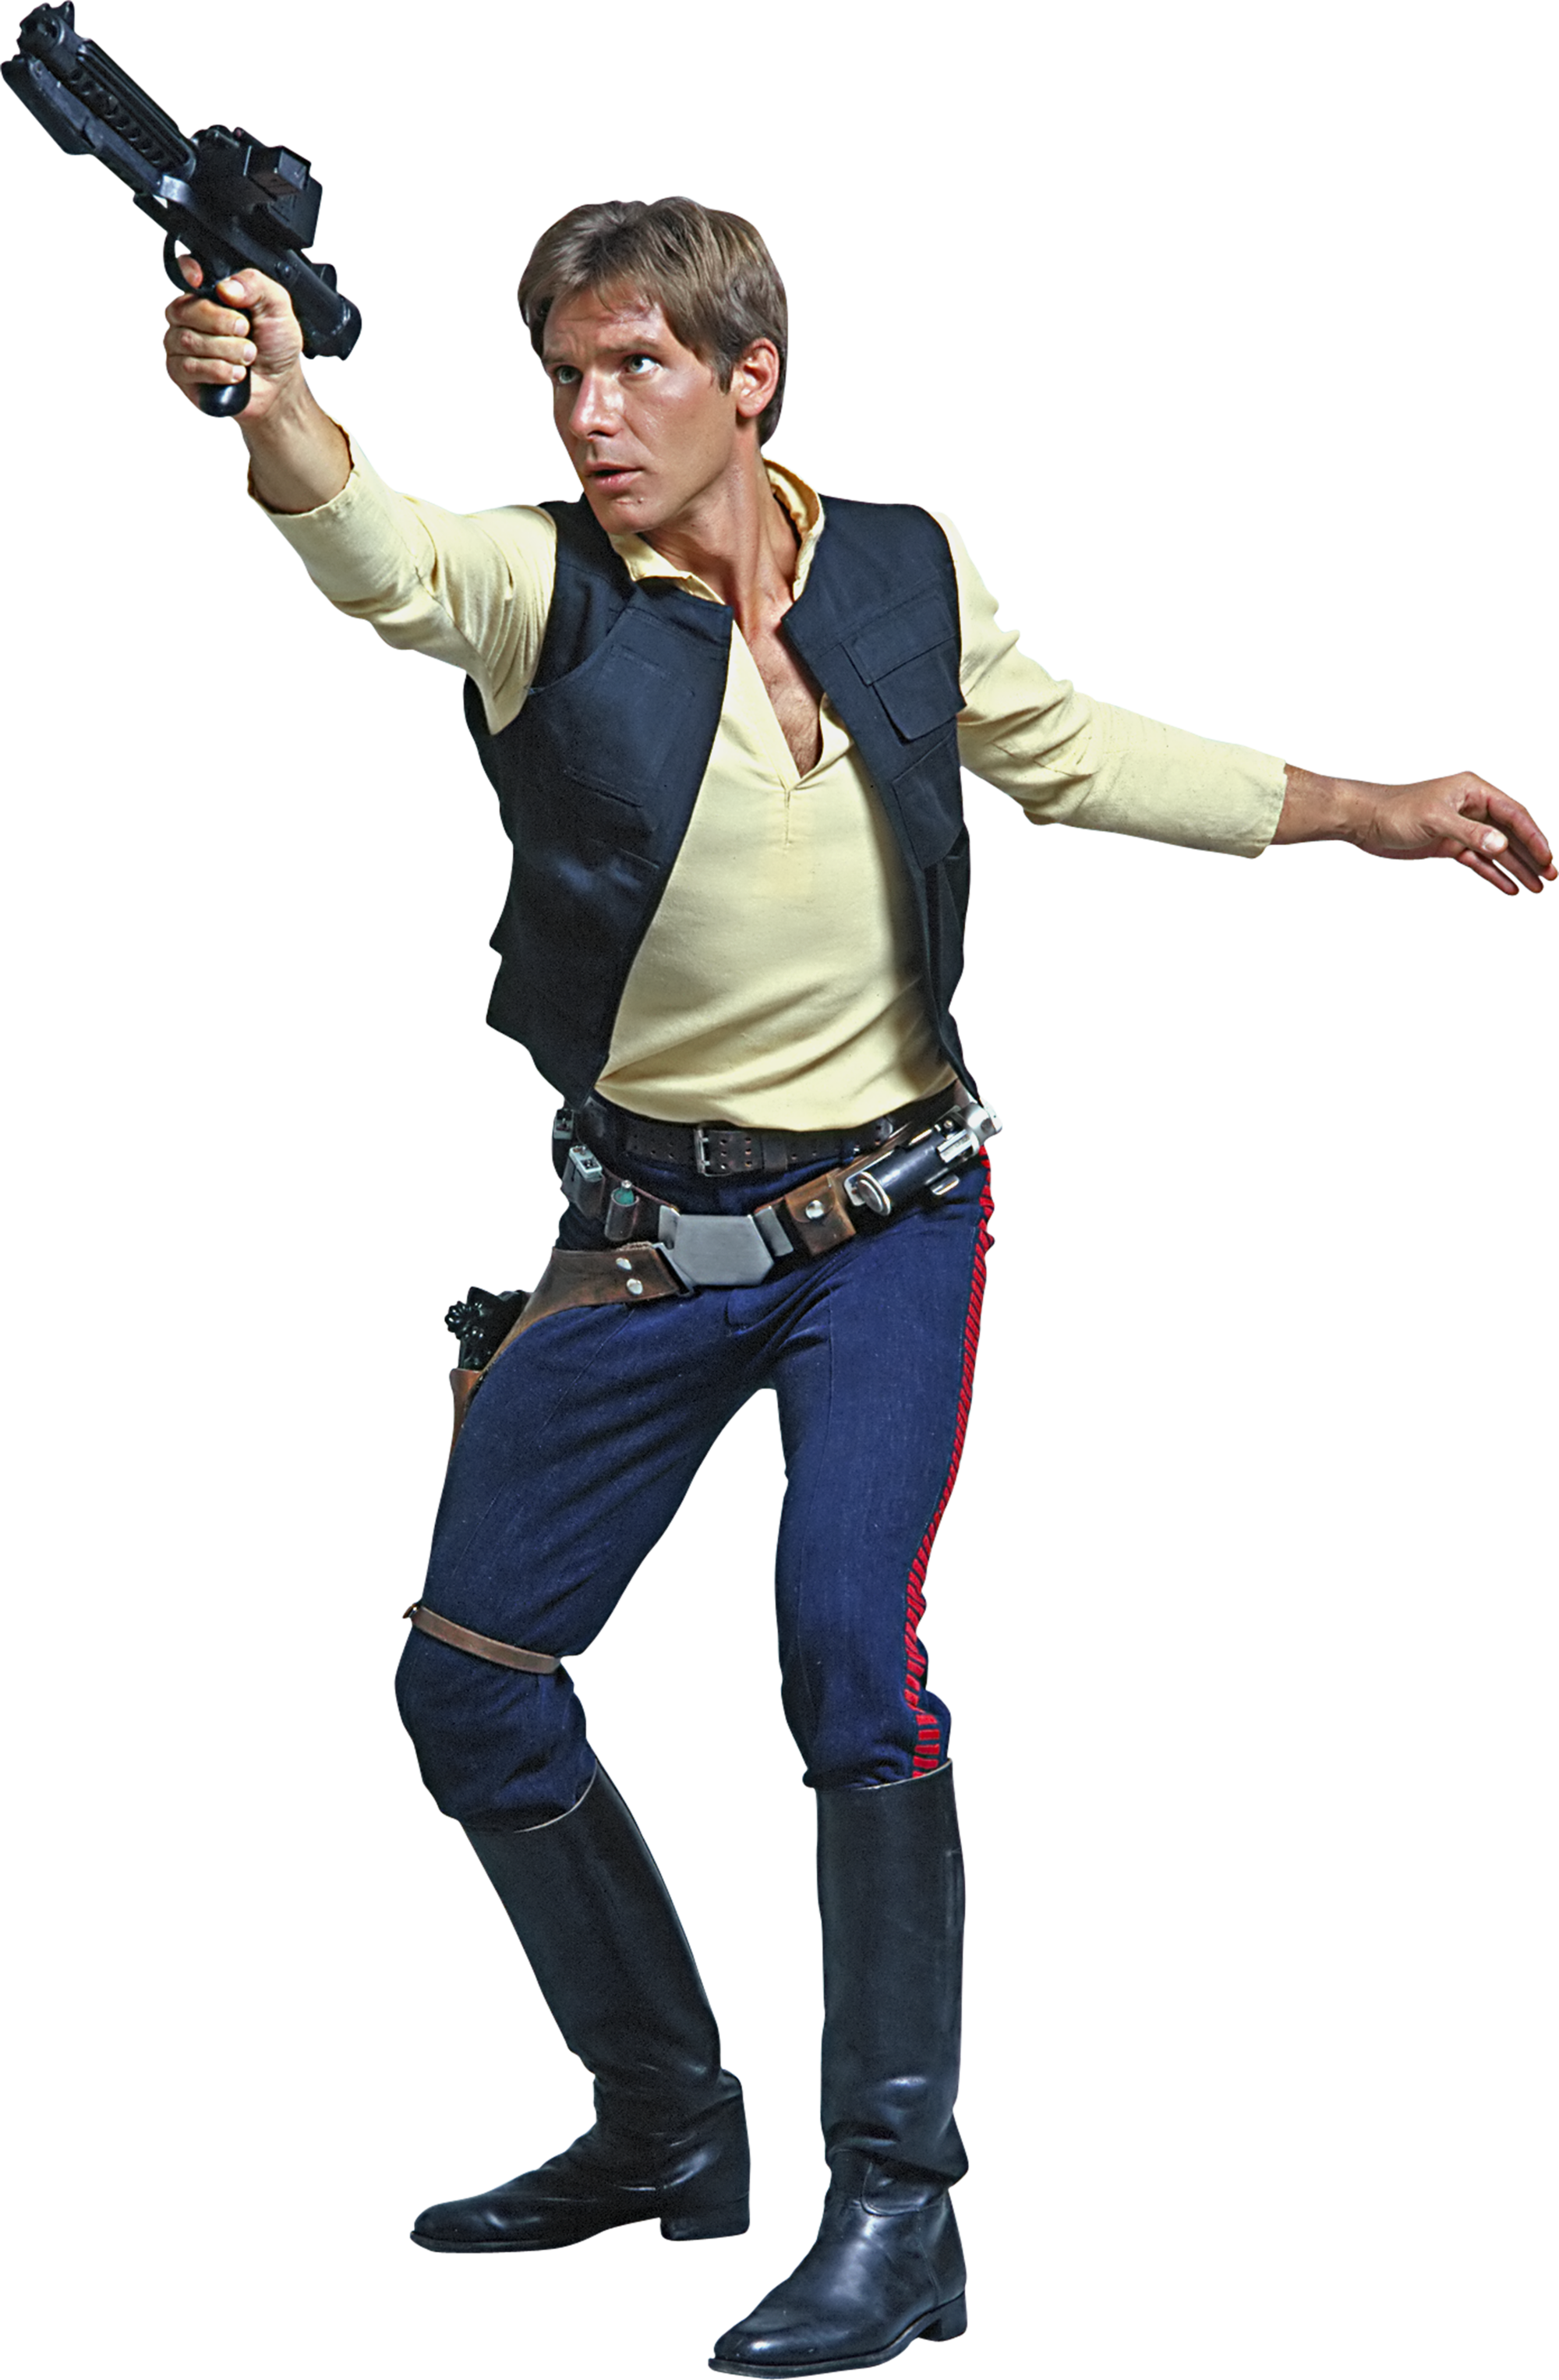 Image - Han-Solo-Fathead-01.png | Disney Wiki | FANDOM powered by Wikia - Han Solo PNG